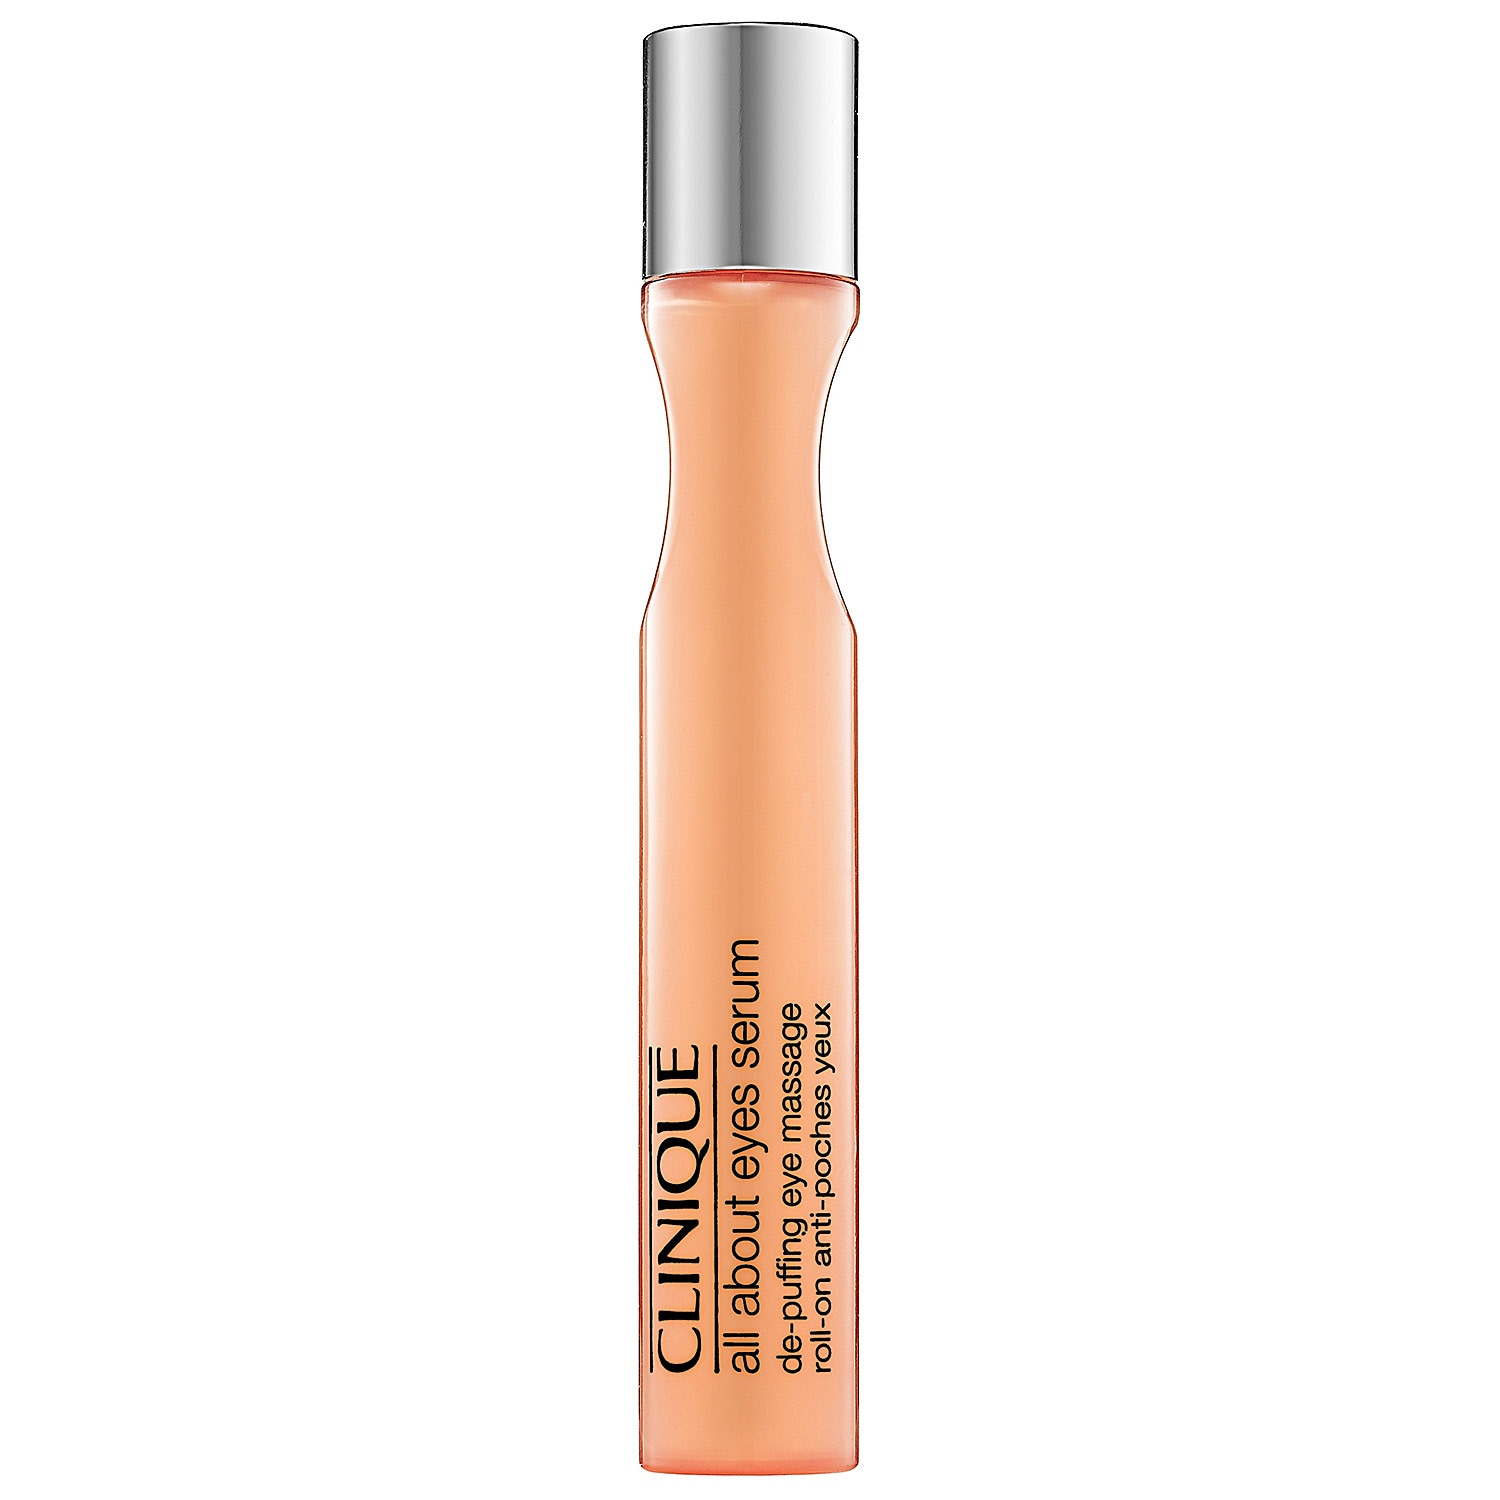 Clinique - All About Eyes Serum De-Puffing Eye Massage